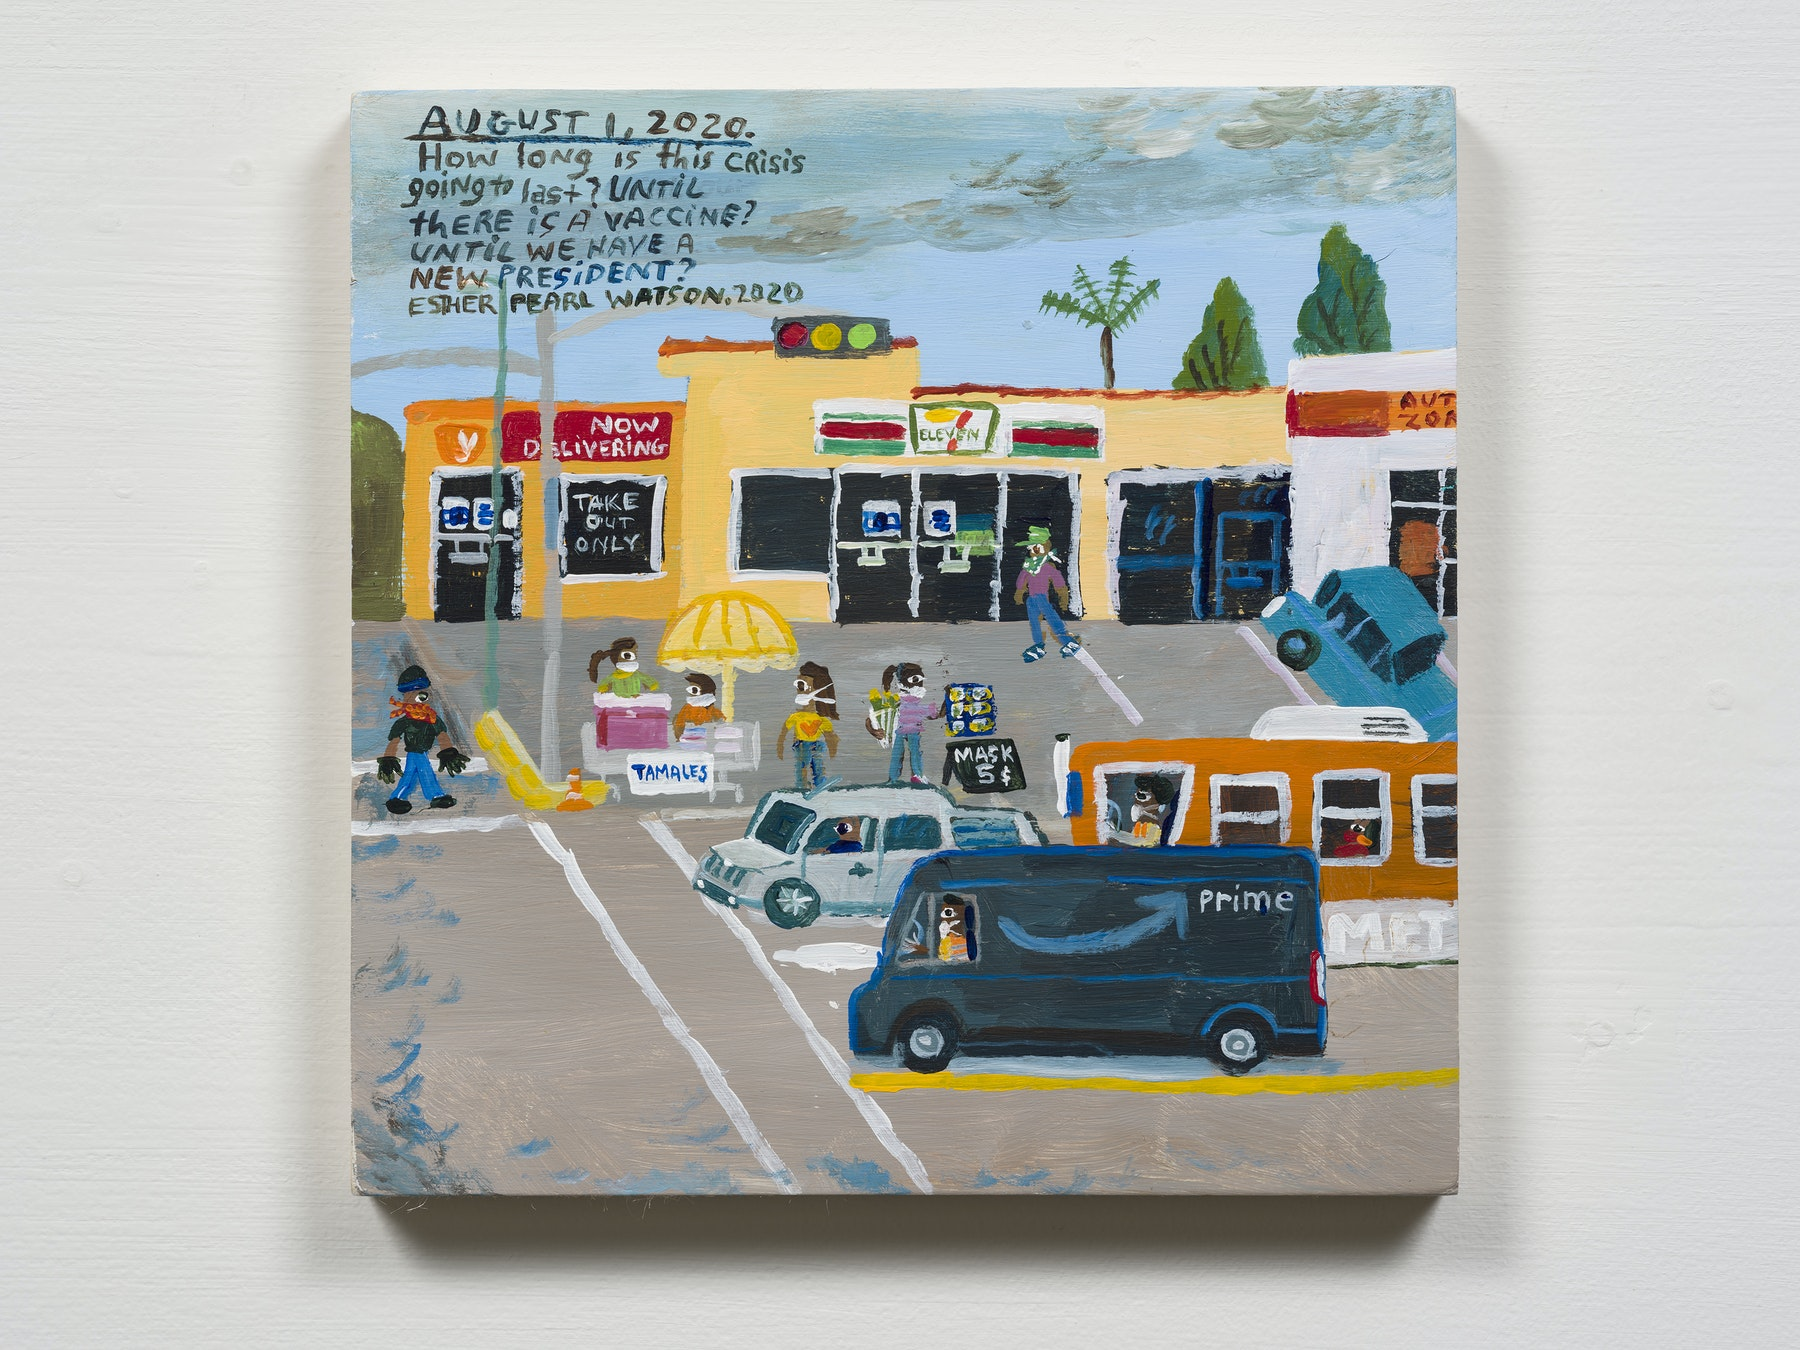 """Esther Pearl Watson """"August 1, How Long Is This Crisis Going to Last?,"""" 2020 Acrylic with pencil on panel 8 x 8"""" [HxW] (20.32 x 20.32 cm) Inventory #EPW319 Courtesy of the artist and Vielmetter Los Angeles Photo credit: Jeff Mclane"""